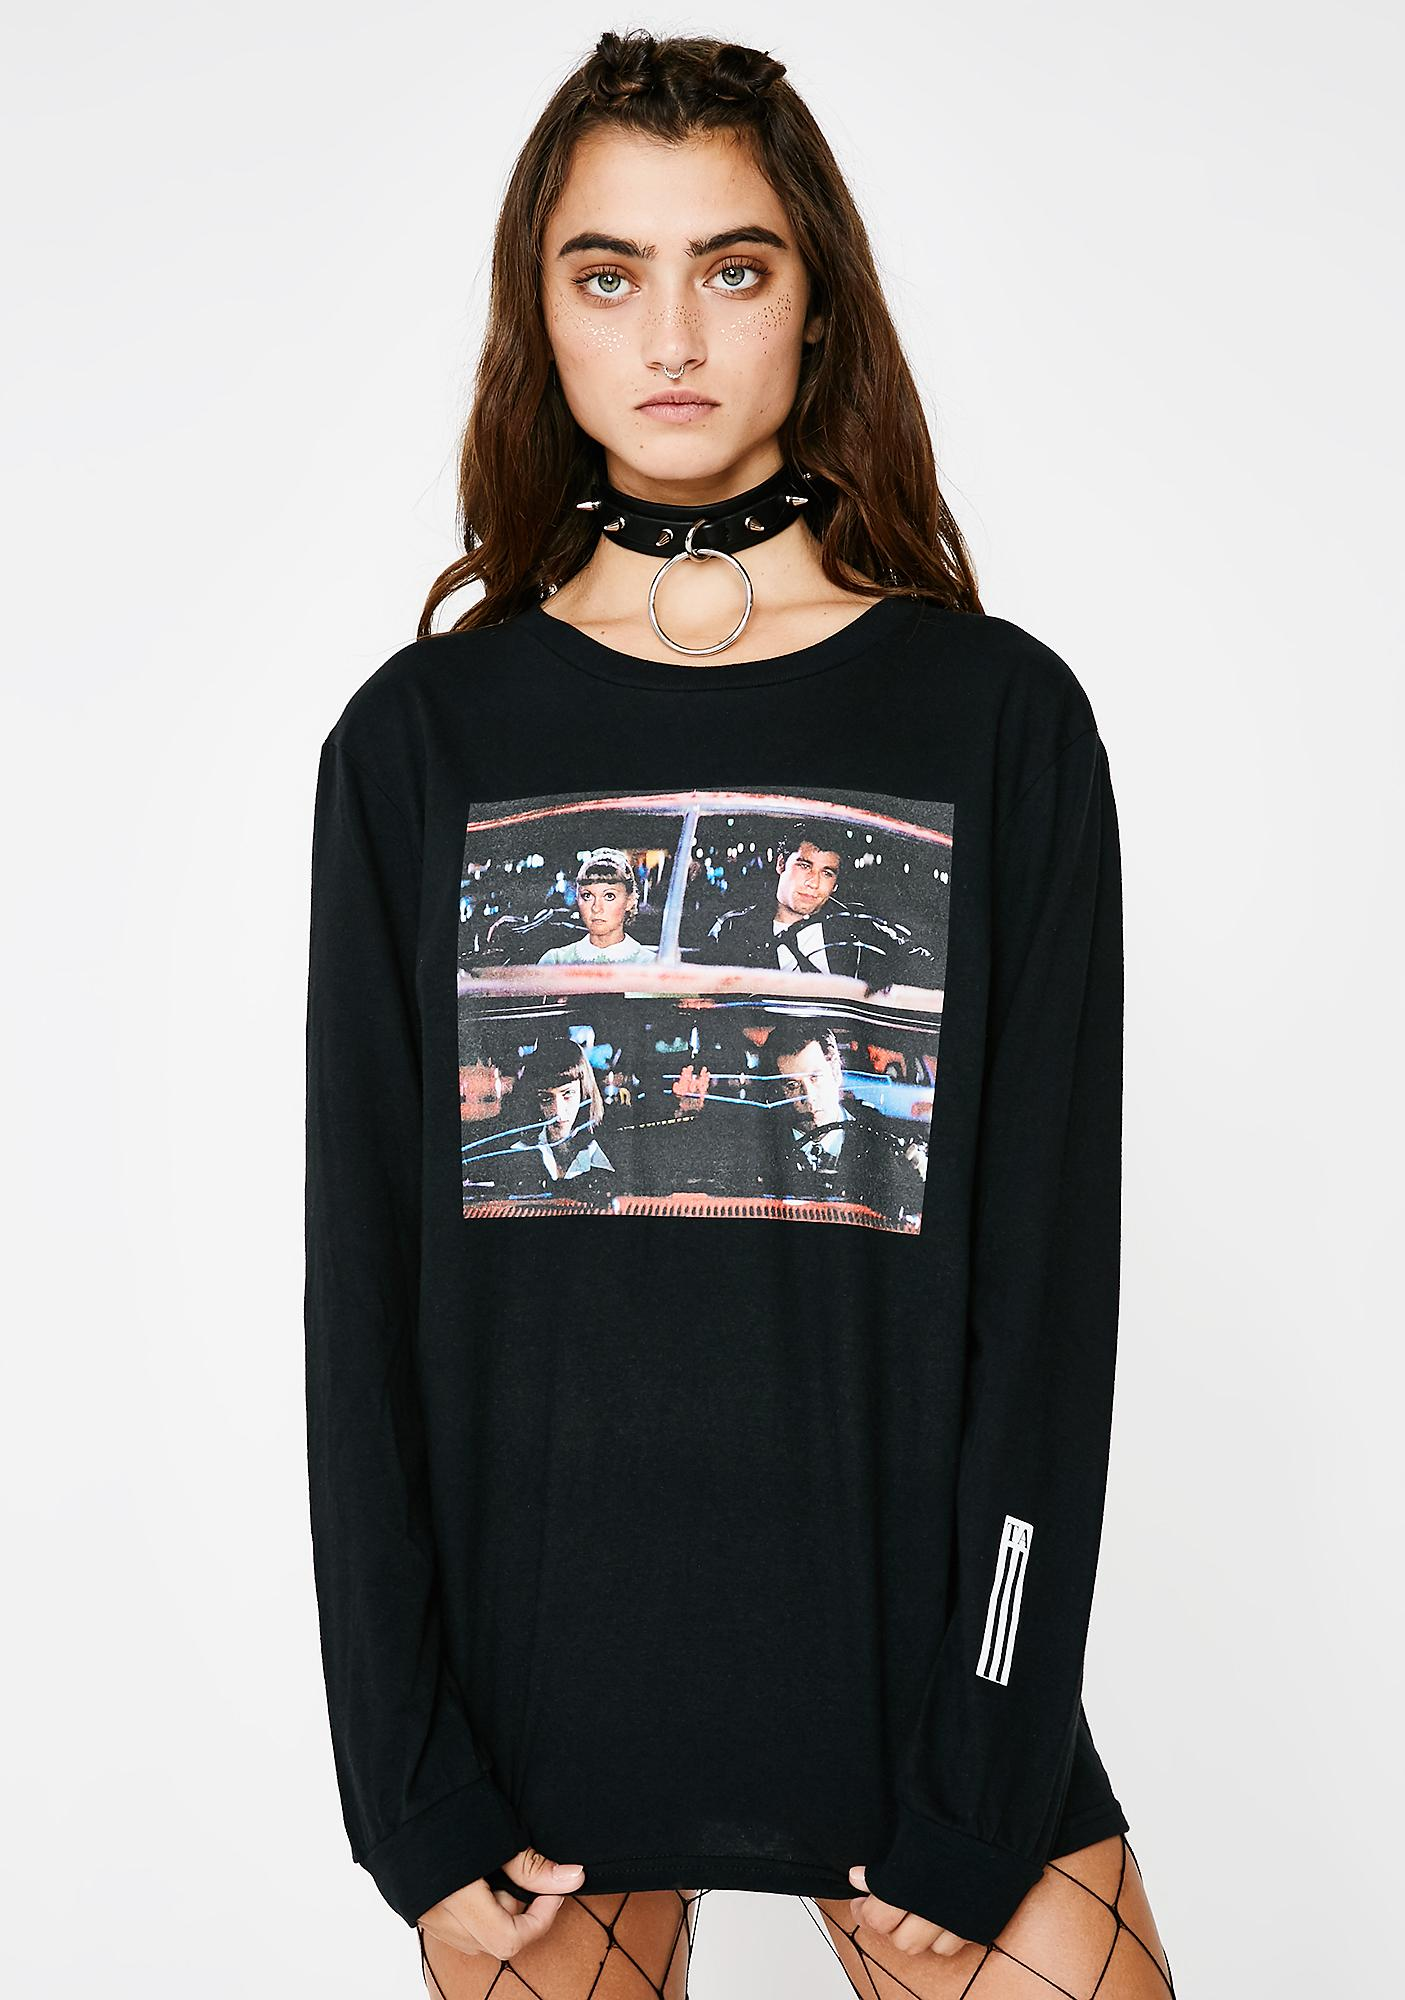 These Americans Danny Sandy Vinny Mia Long Sleeve Tee